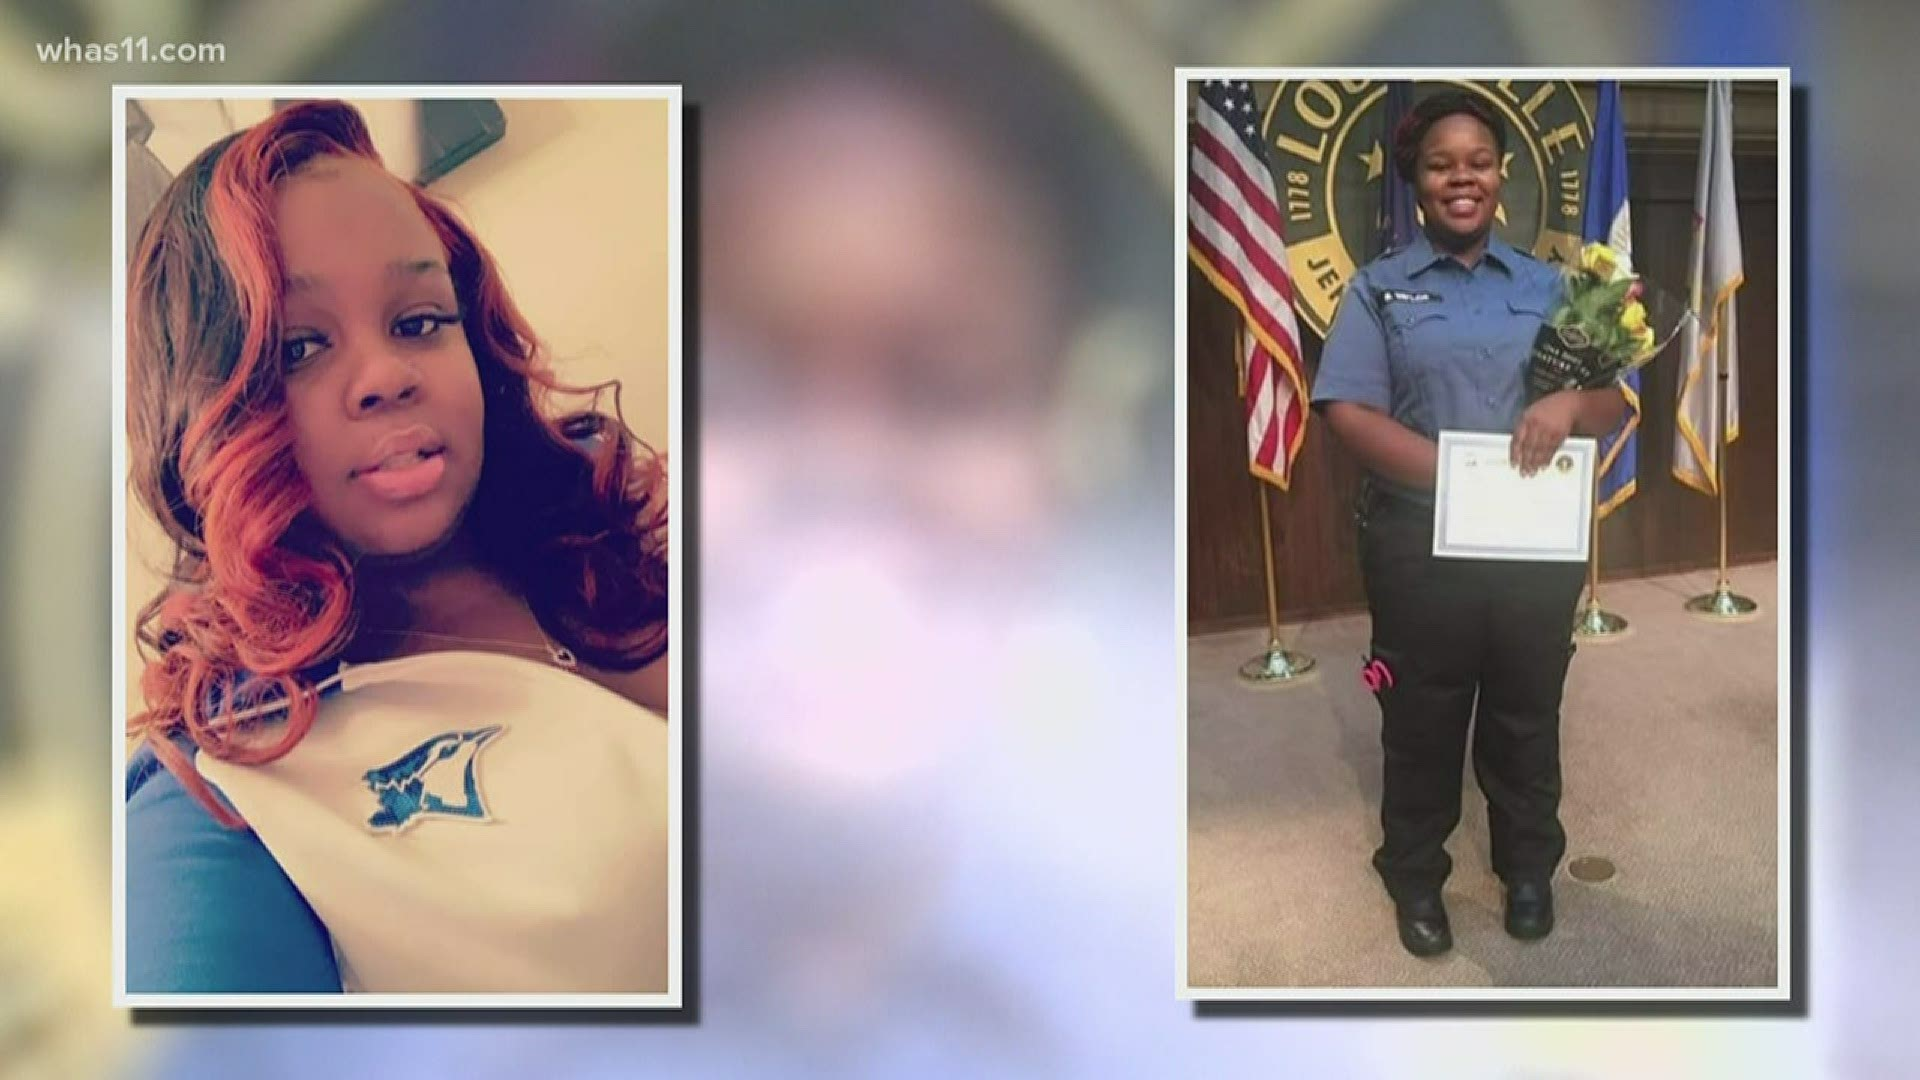 Louisville Emt Breonna Taylor Shot 8 Times By Officer During Raid Whas11 Com